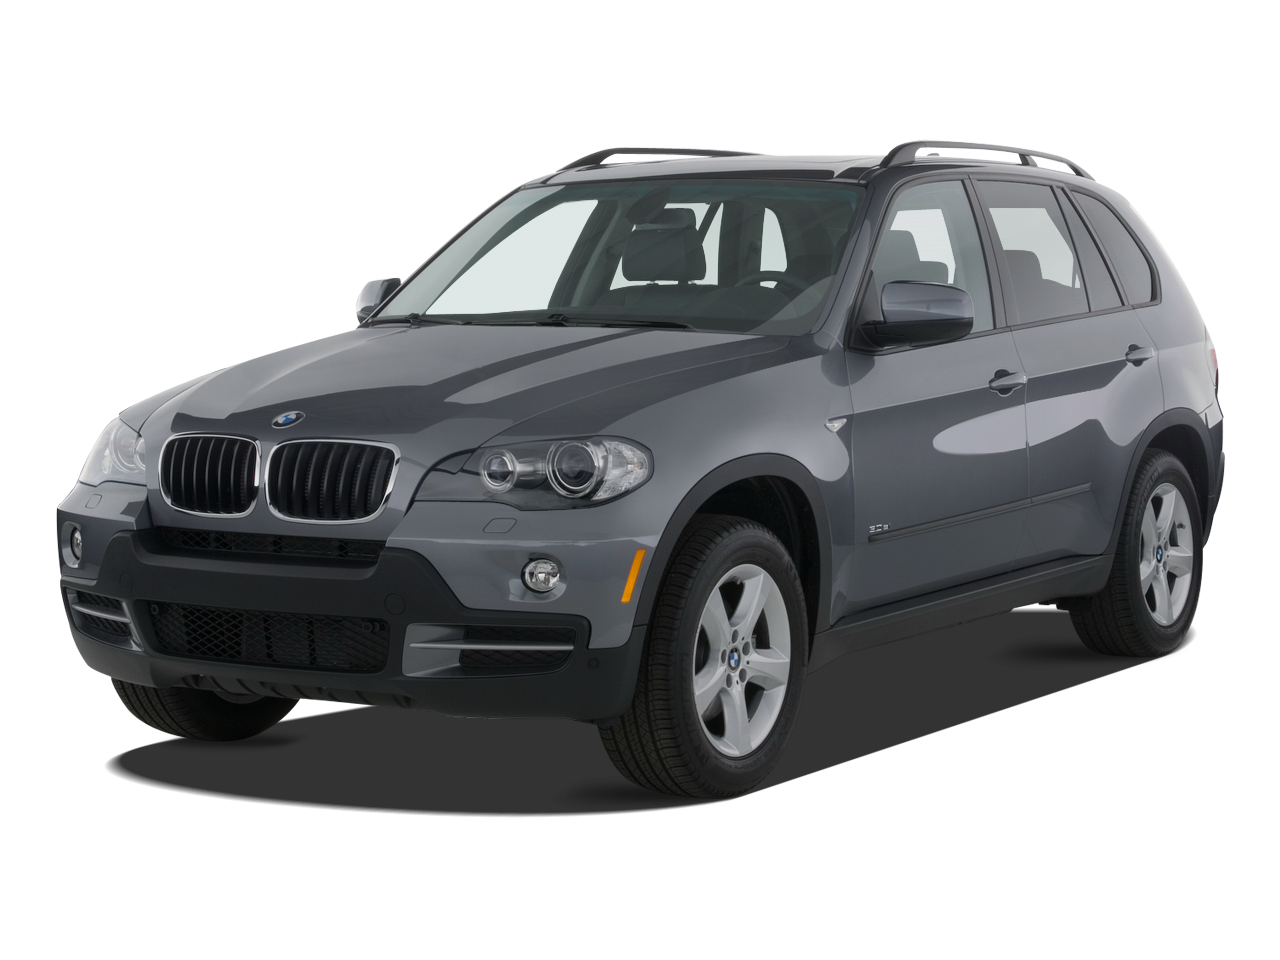 Bmw Plans Performance Oriented X6 Suv For 2008 Release